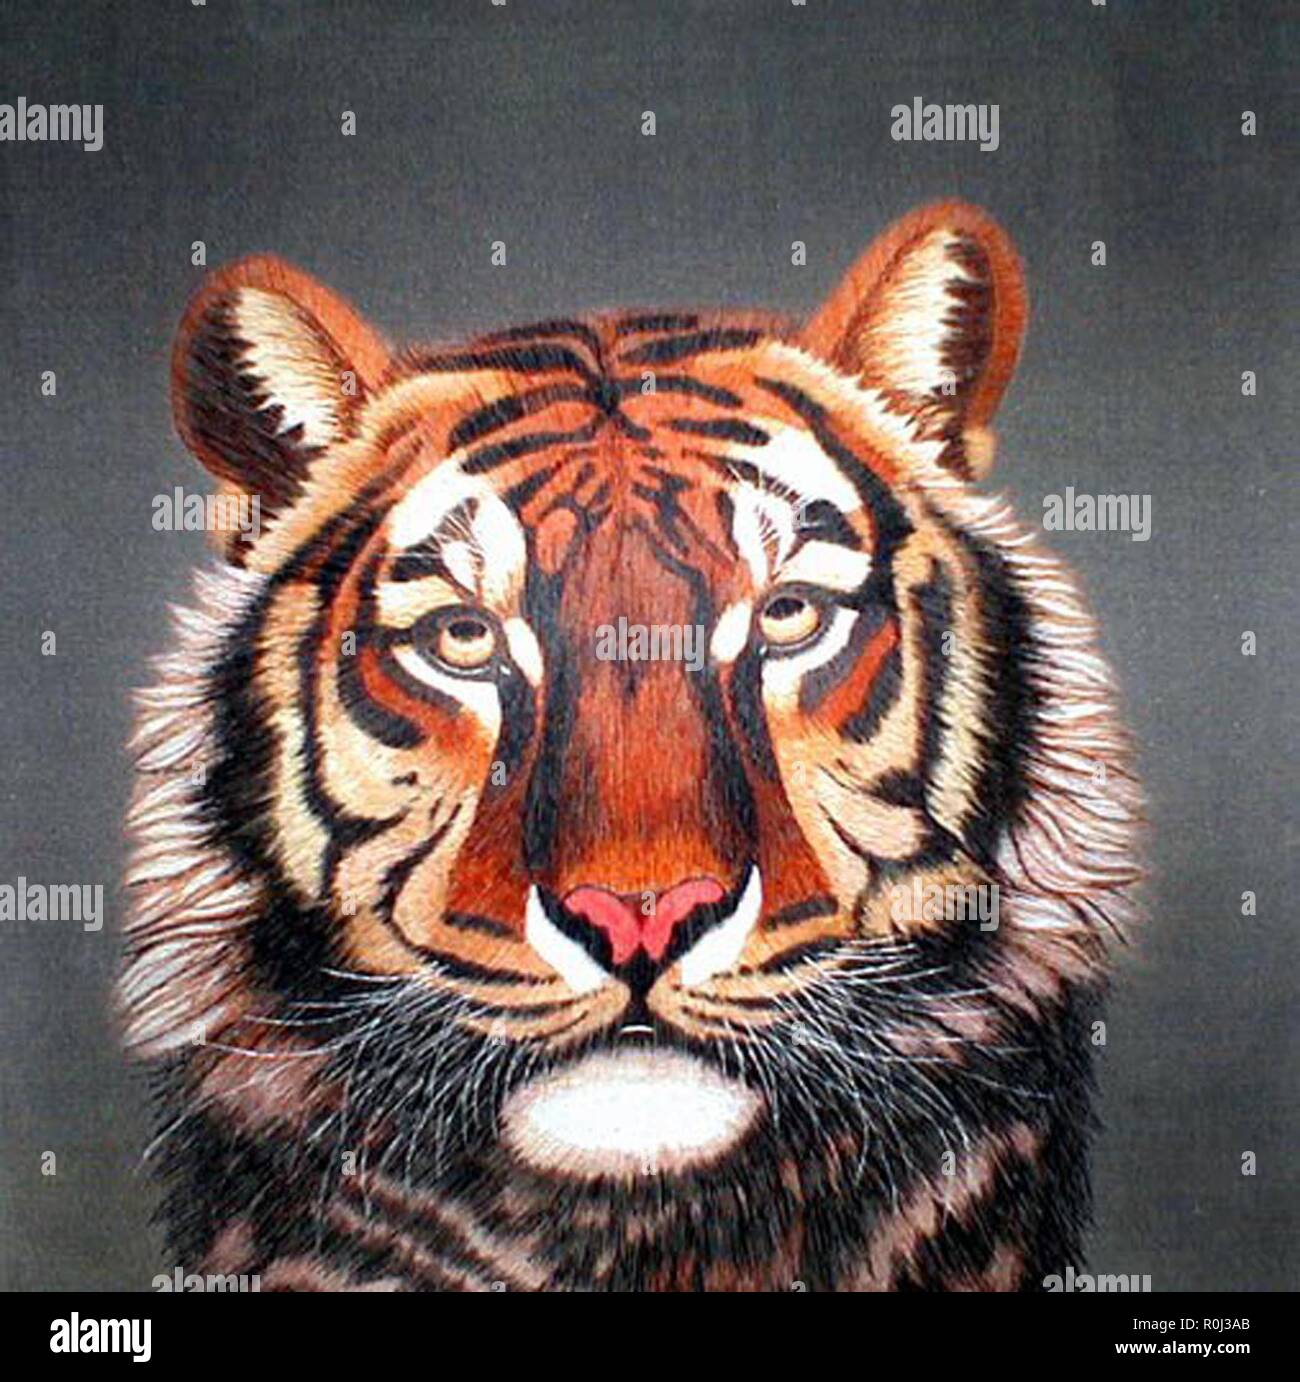 hight resolution of portrait of a tiger stock image